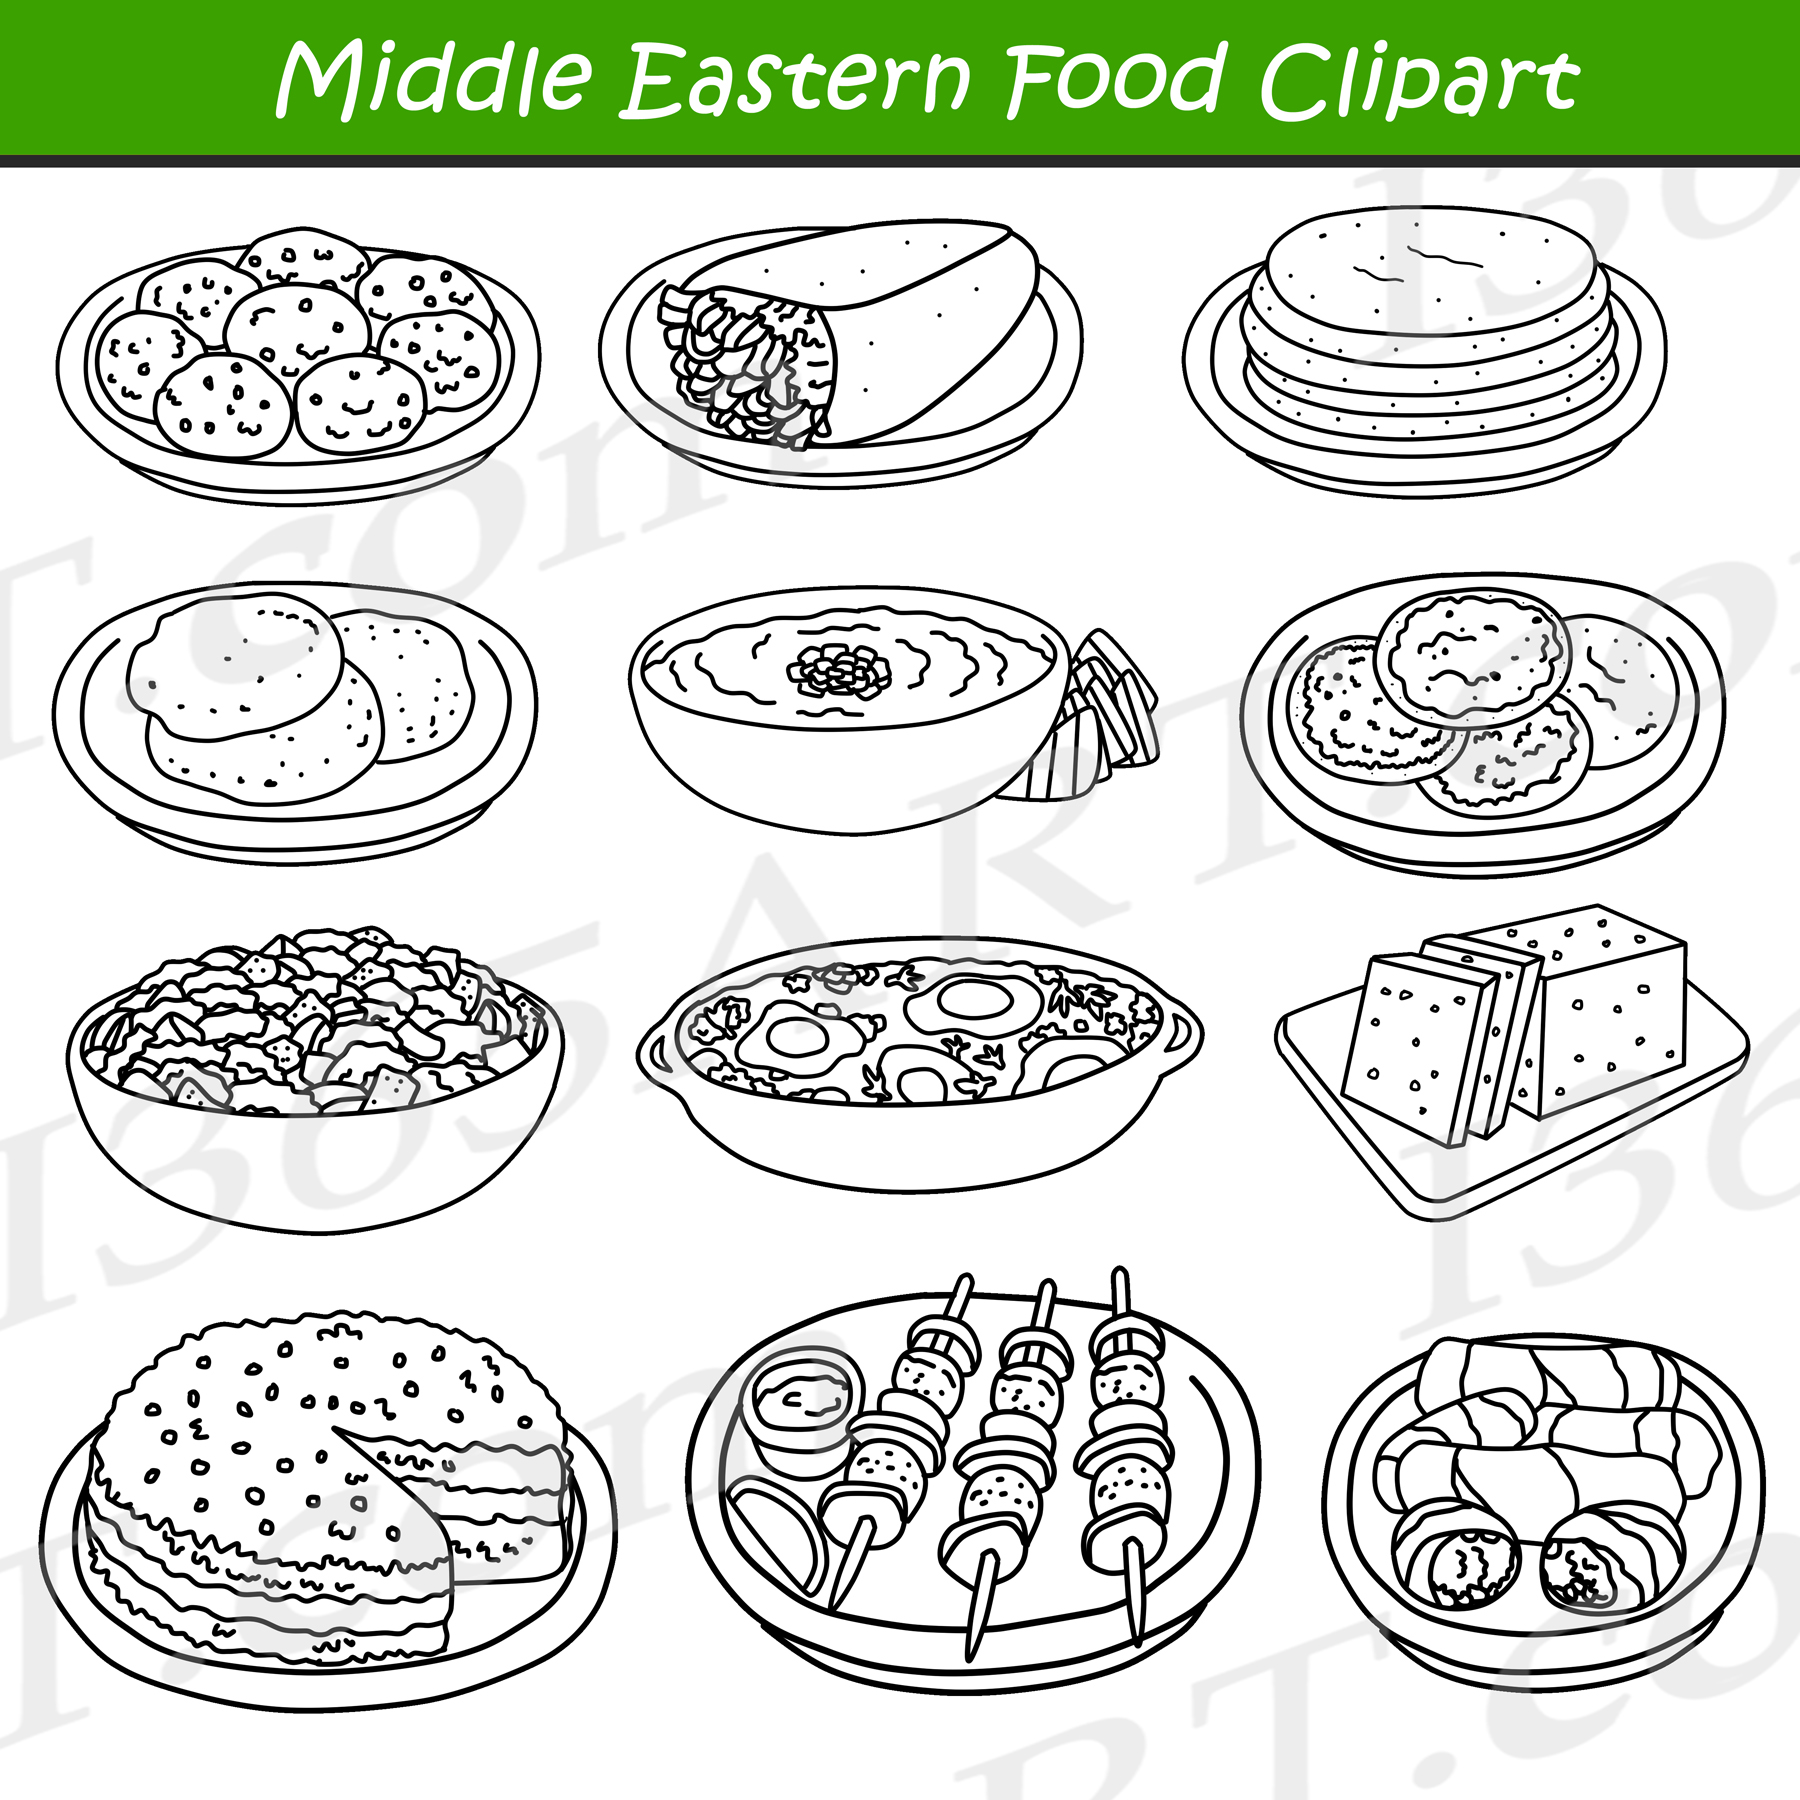 Middle Eastern Food Clipart - Arabic Food Clip Art ...